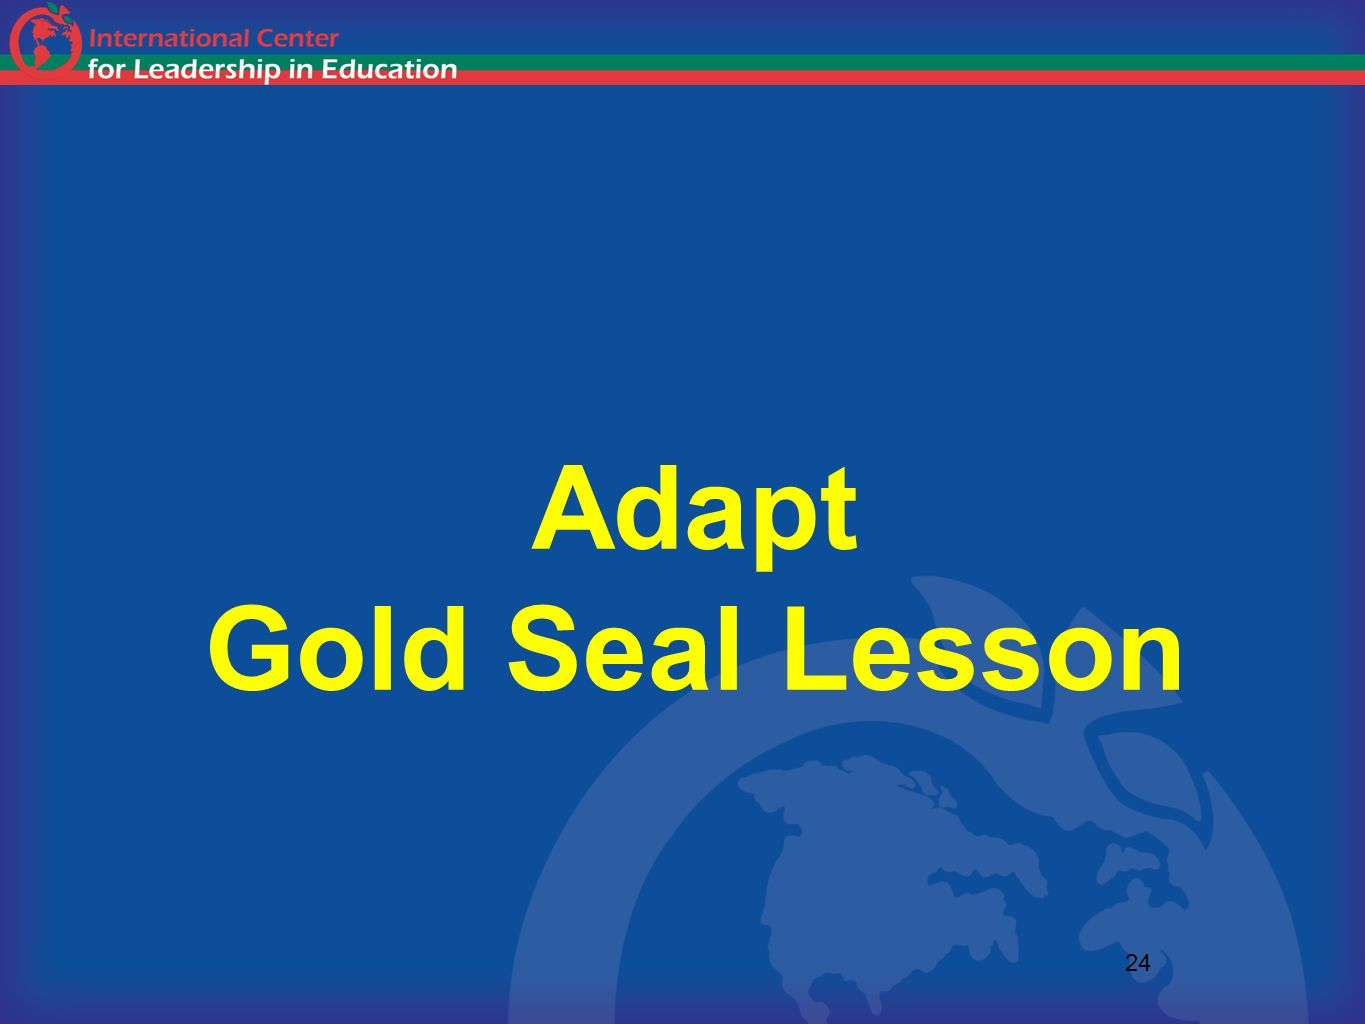 Adapt Gold Seal Lesson